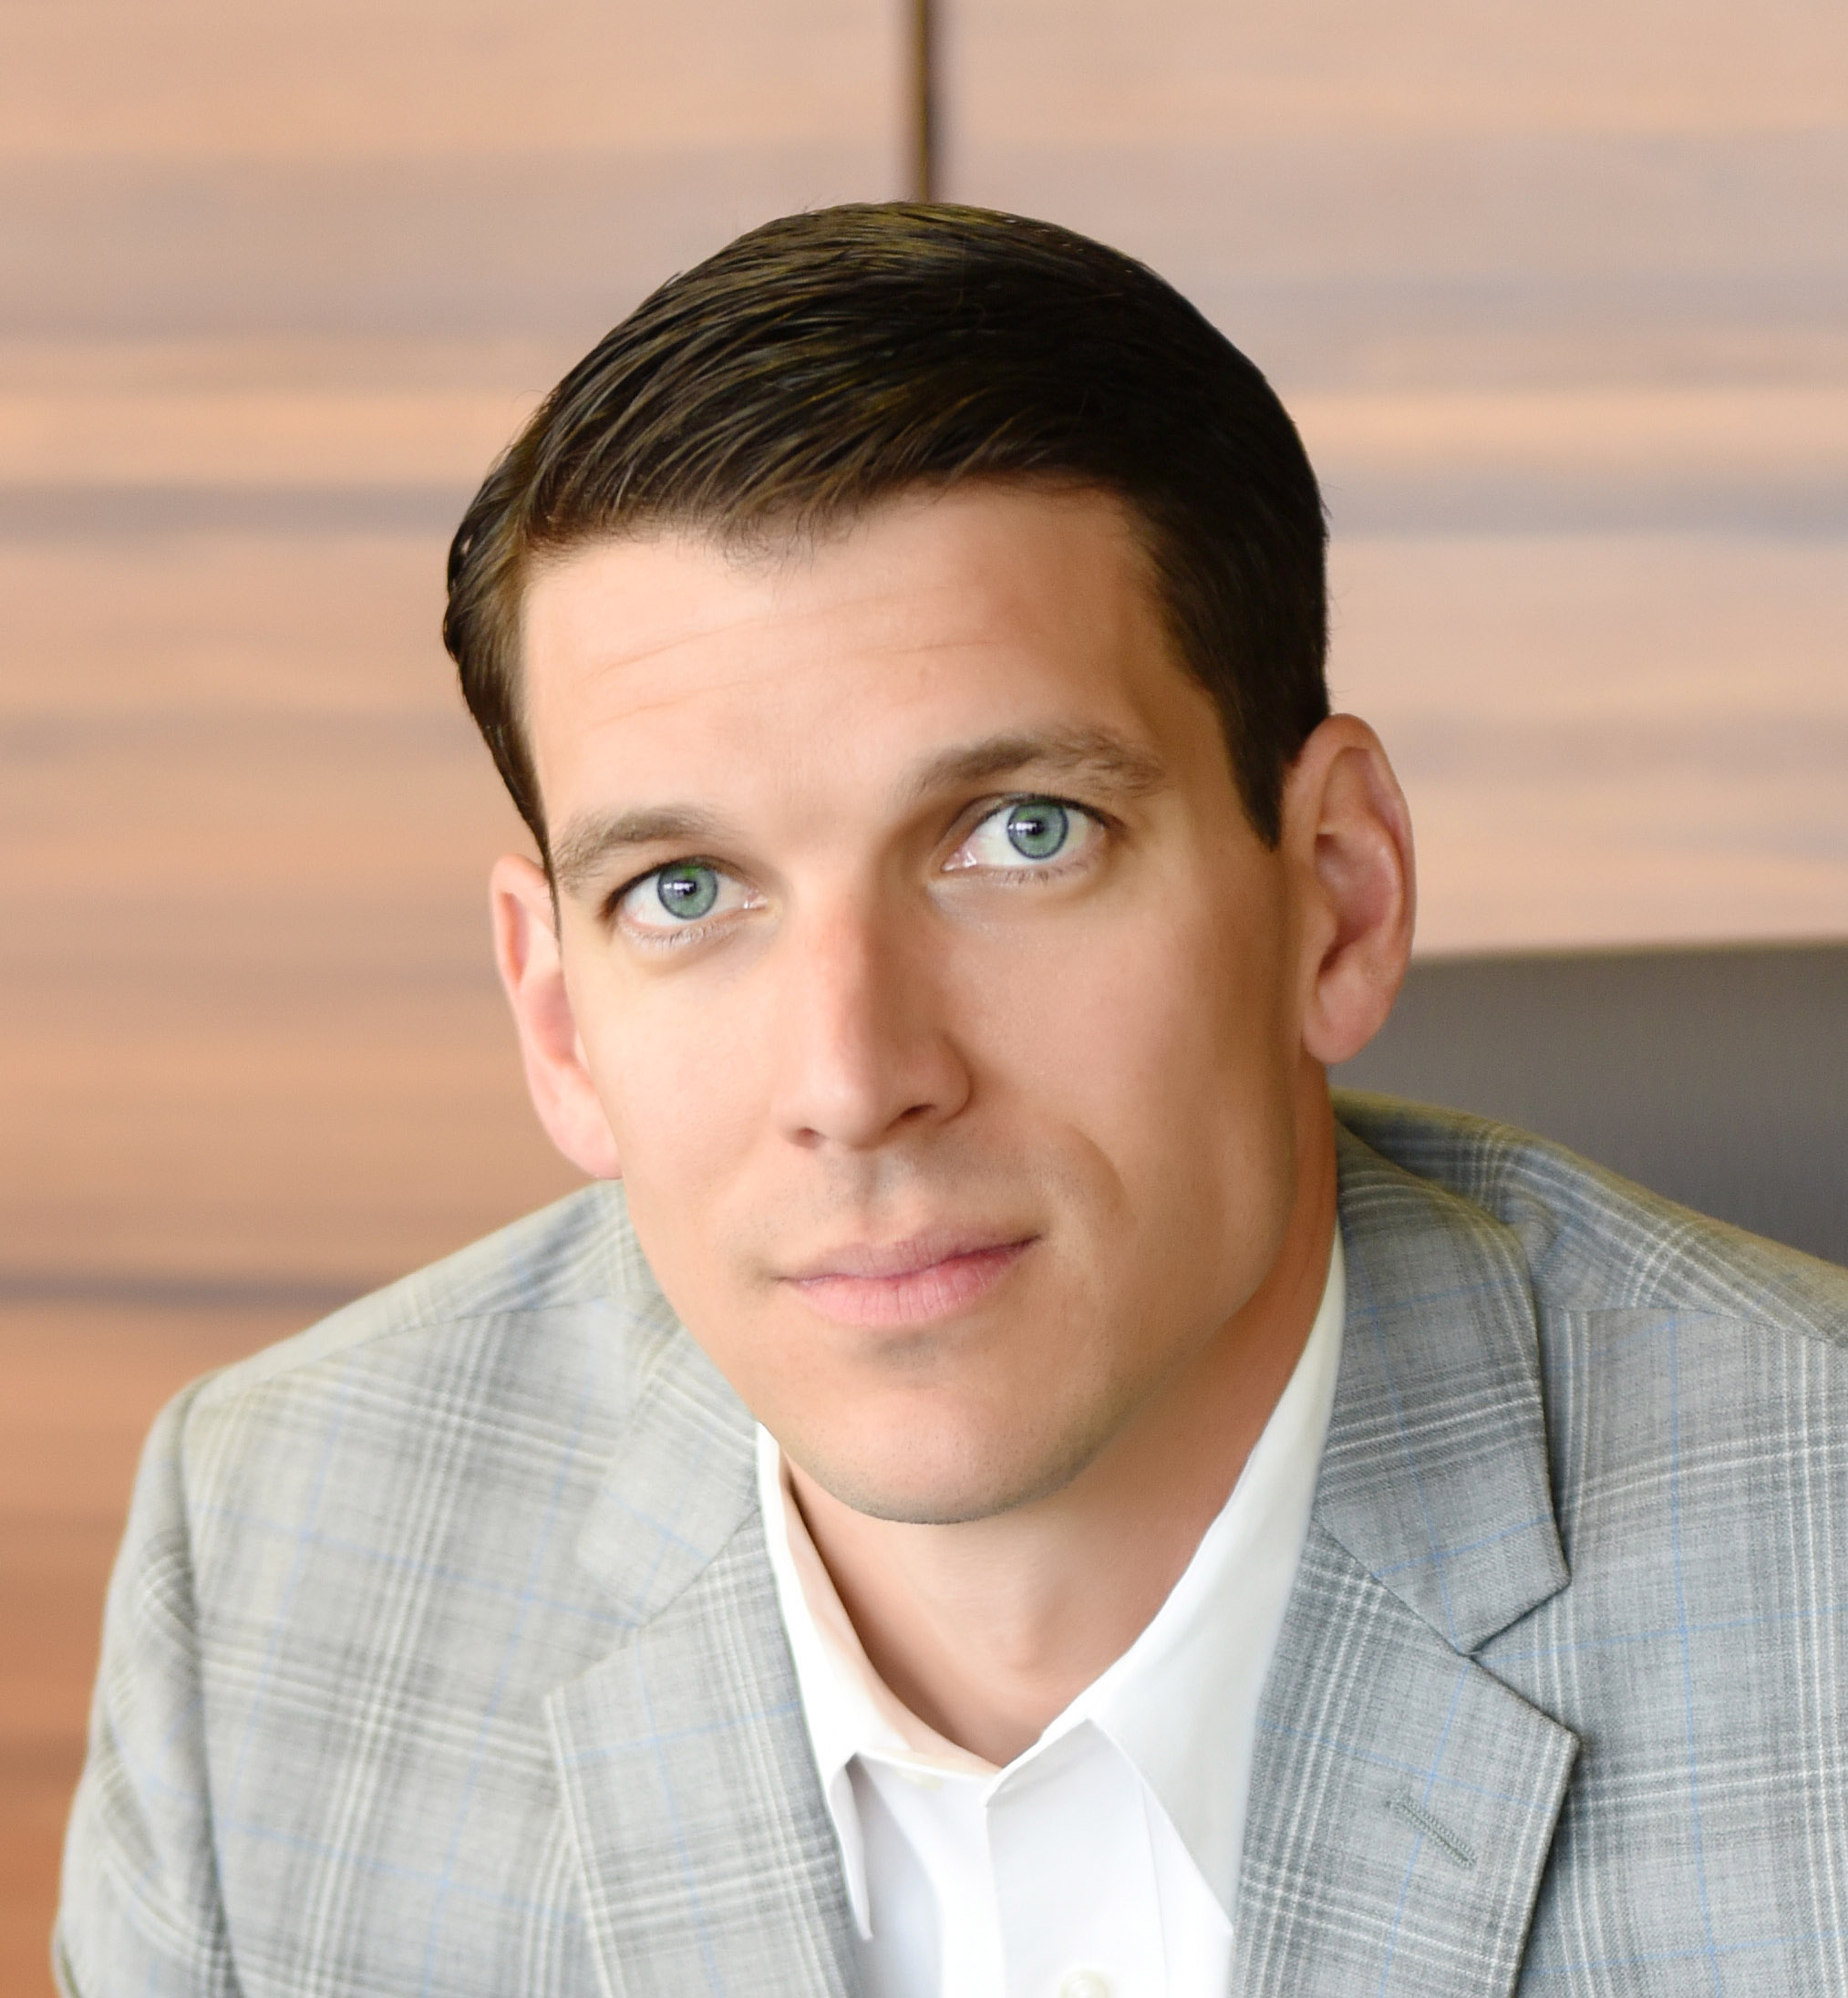 Jonathan Moneymaker, Executive Vice President and Chief Strategy Officer of Altamira Technologies Corporation